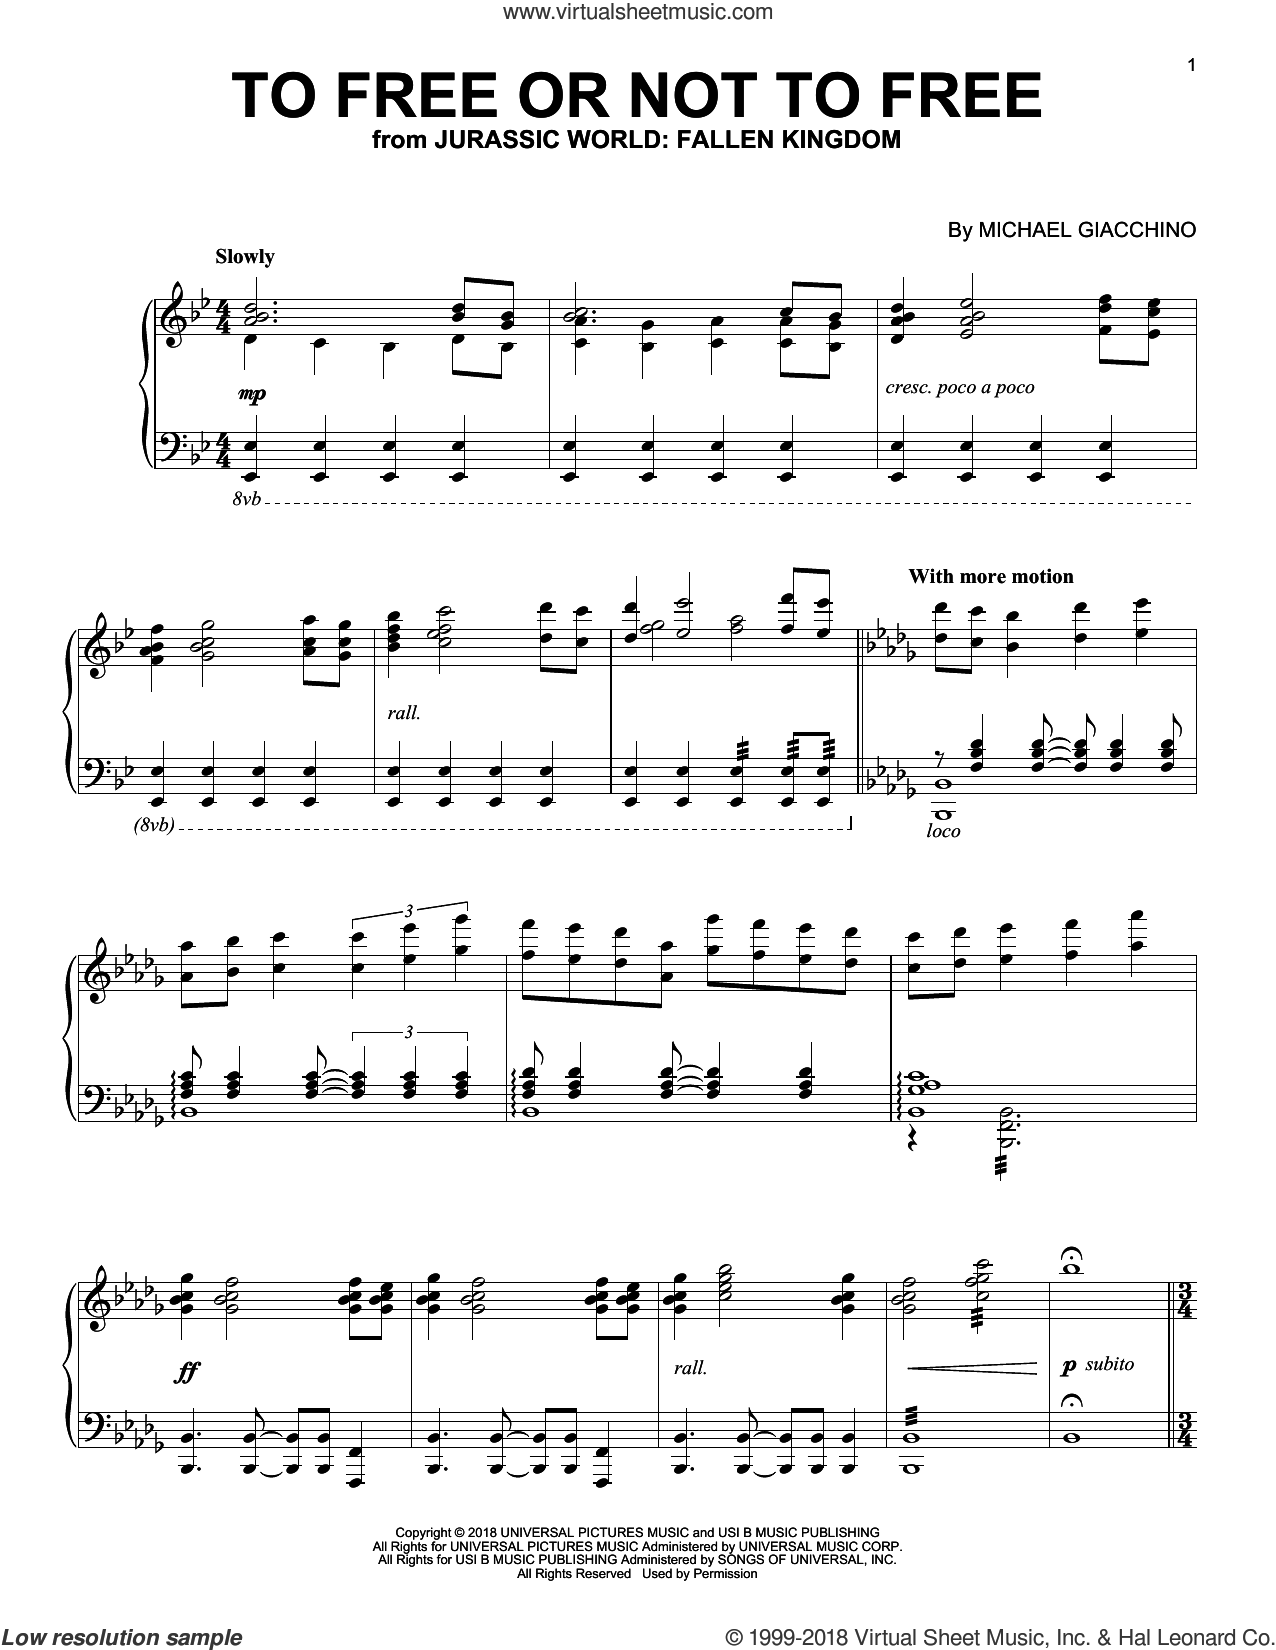 To Free Or Not To Free (from Jurassic World: Fallen Kingdom) sheet music for piano solo by John Williams and Michael Giacchino, classical score, intermediate skill level